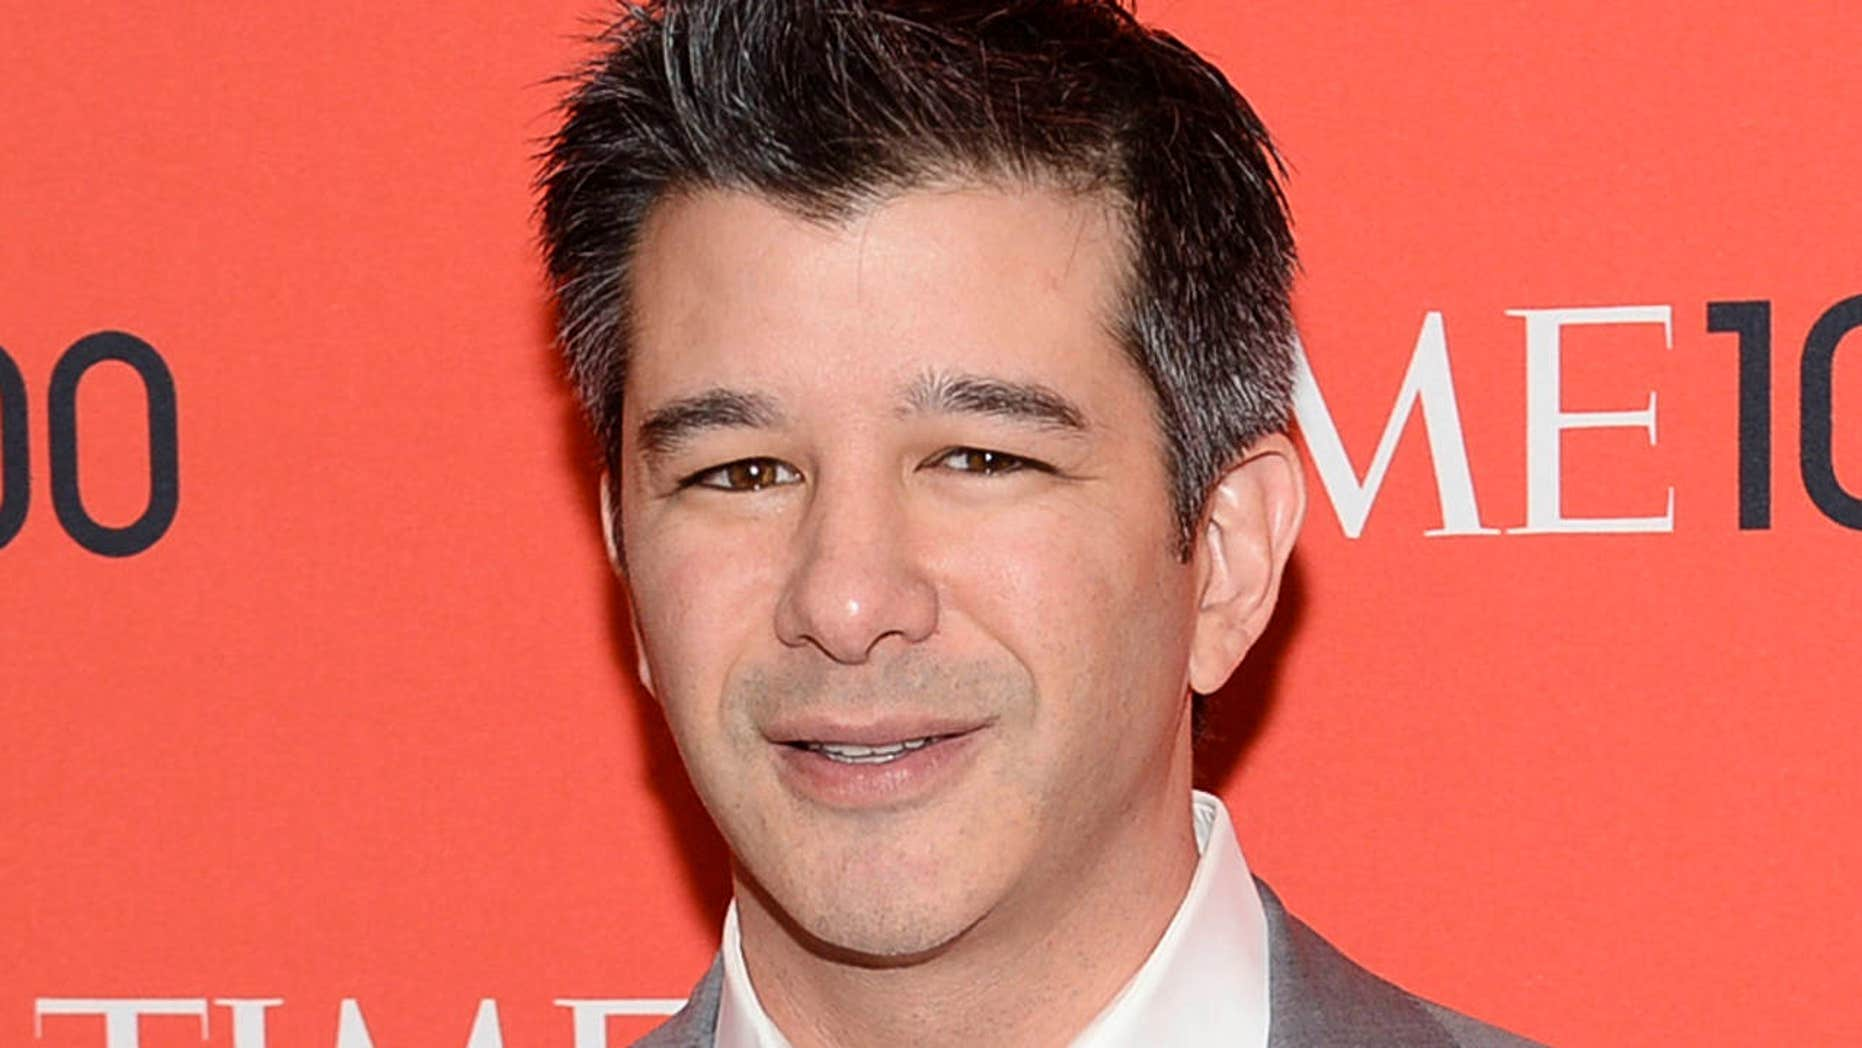 FILE - In this April 29, 2014 file photo, Uber CEO Travis Kalanick arrives at the 2014 TIME 100 Gala in New York.